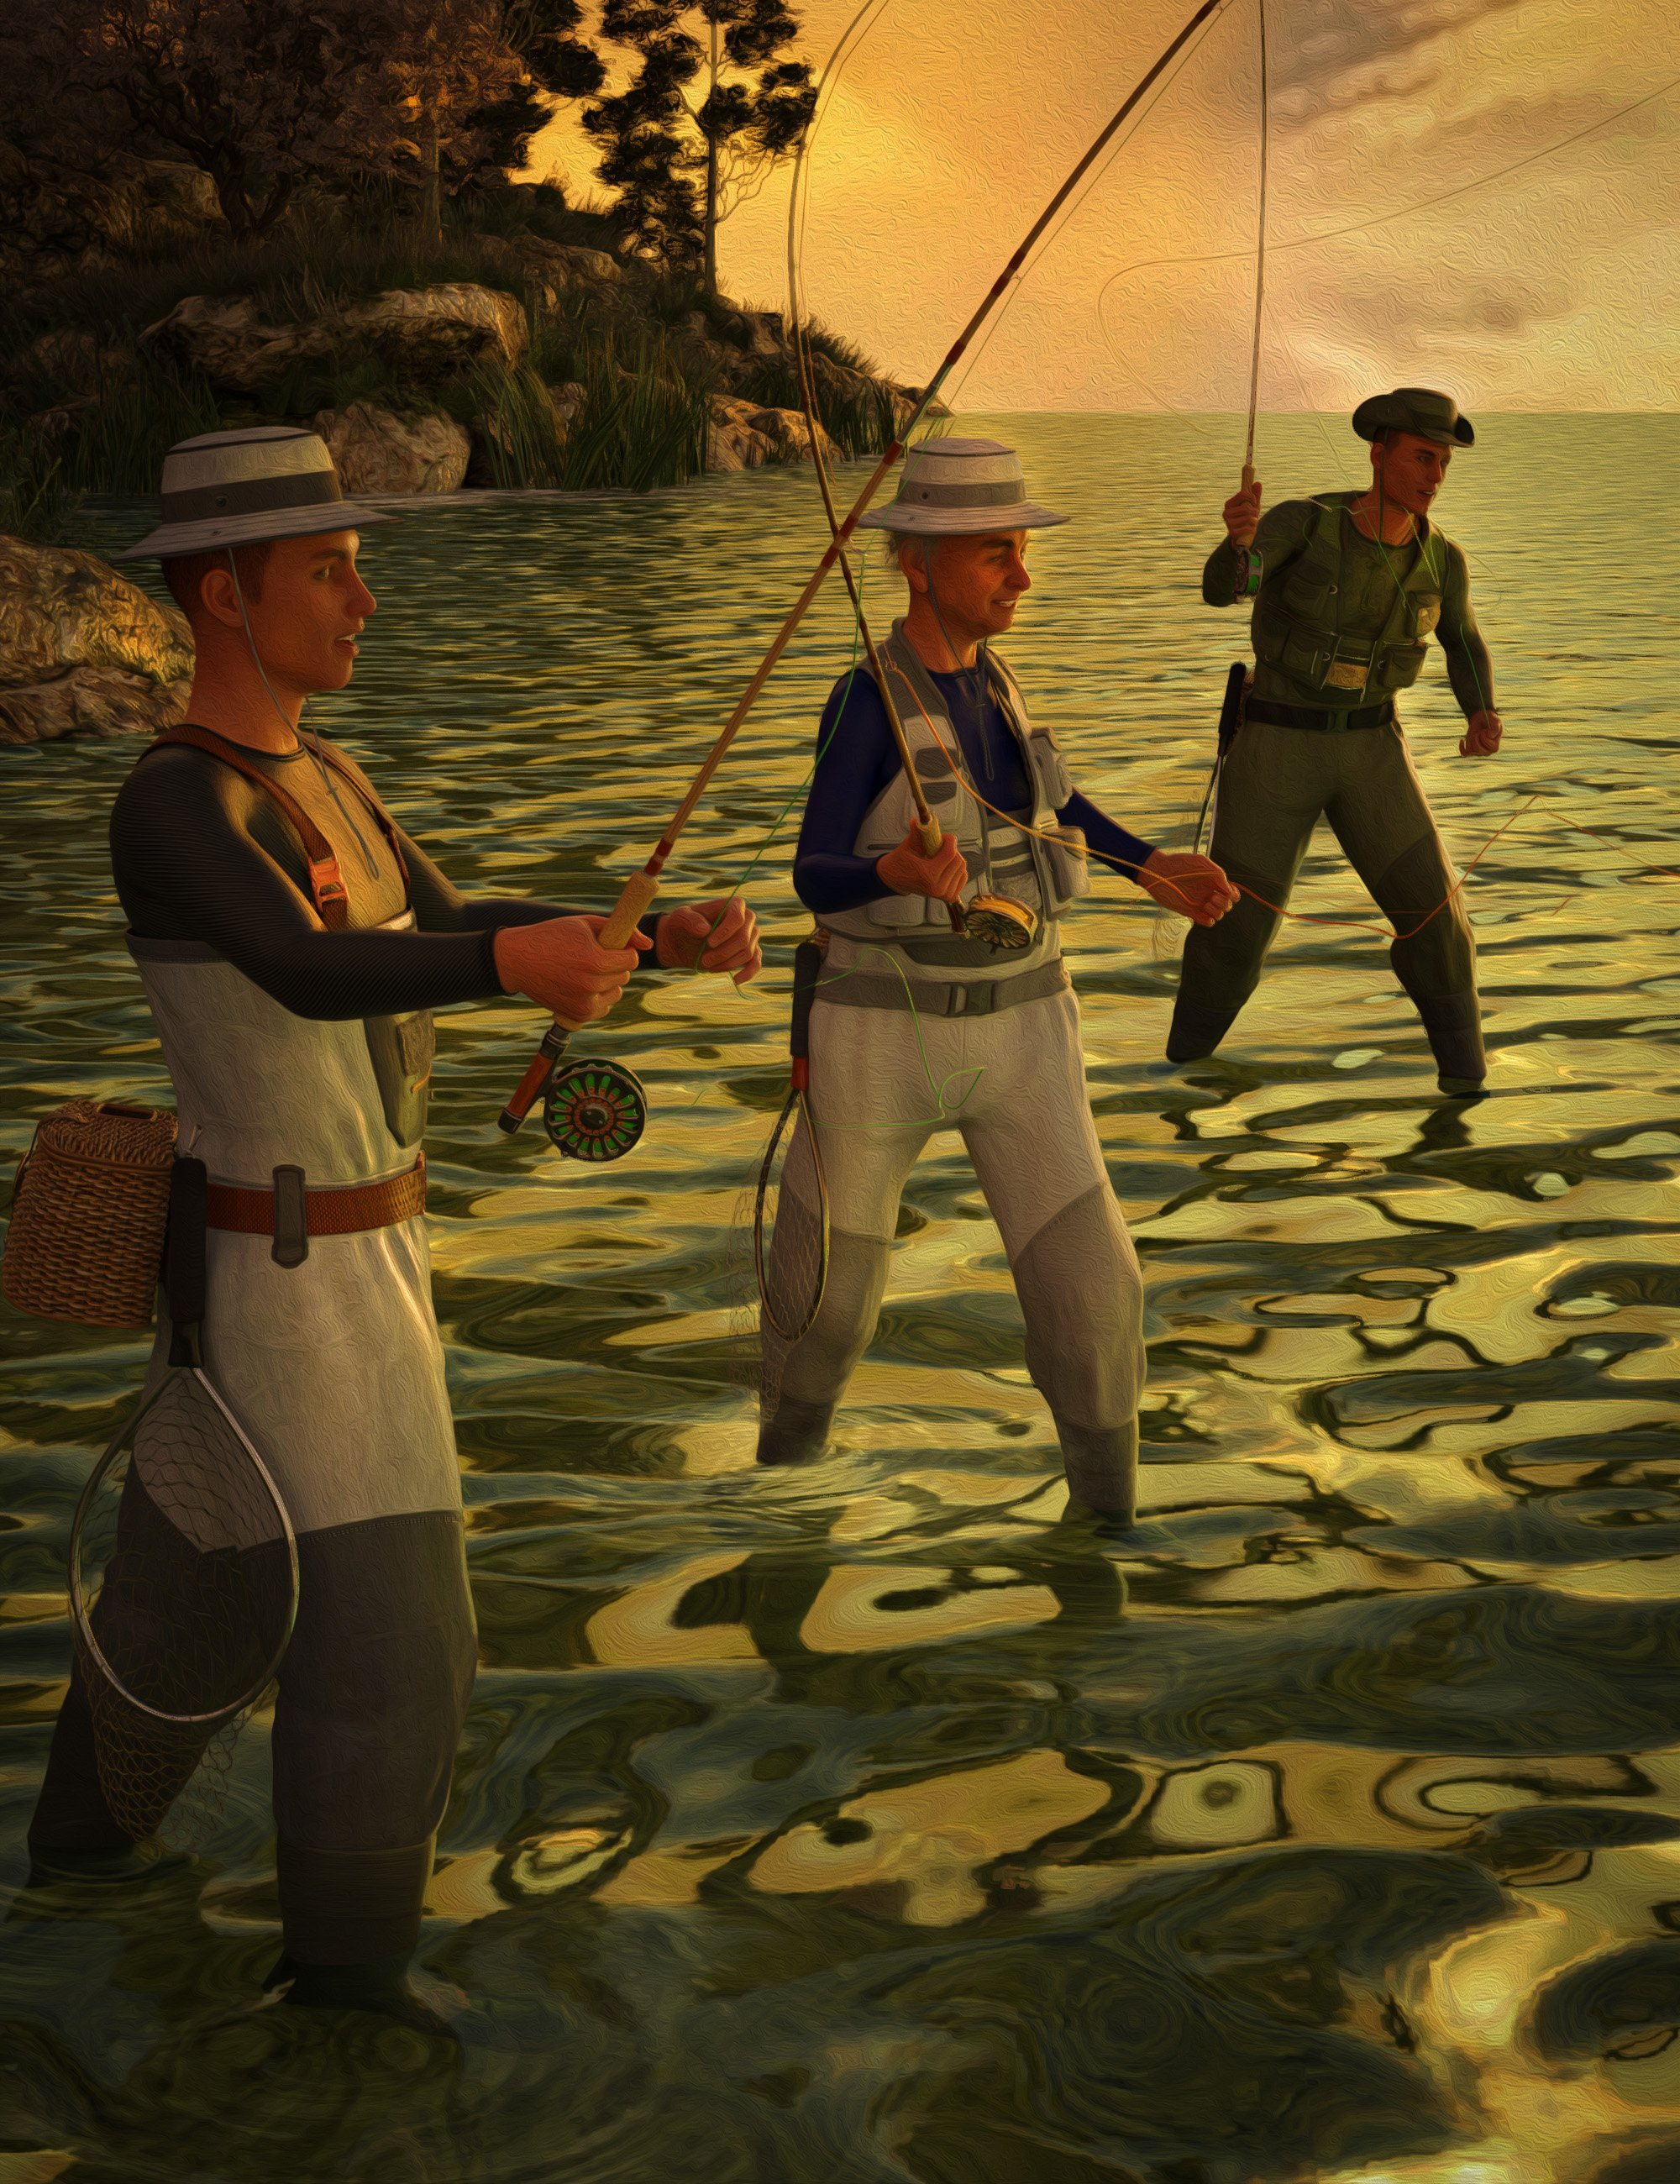 Fly Fishing Poses for Genesis 8 Males by: The Alchemist, 3D Models by Daz 3D